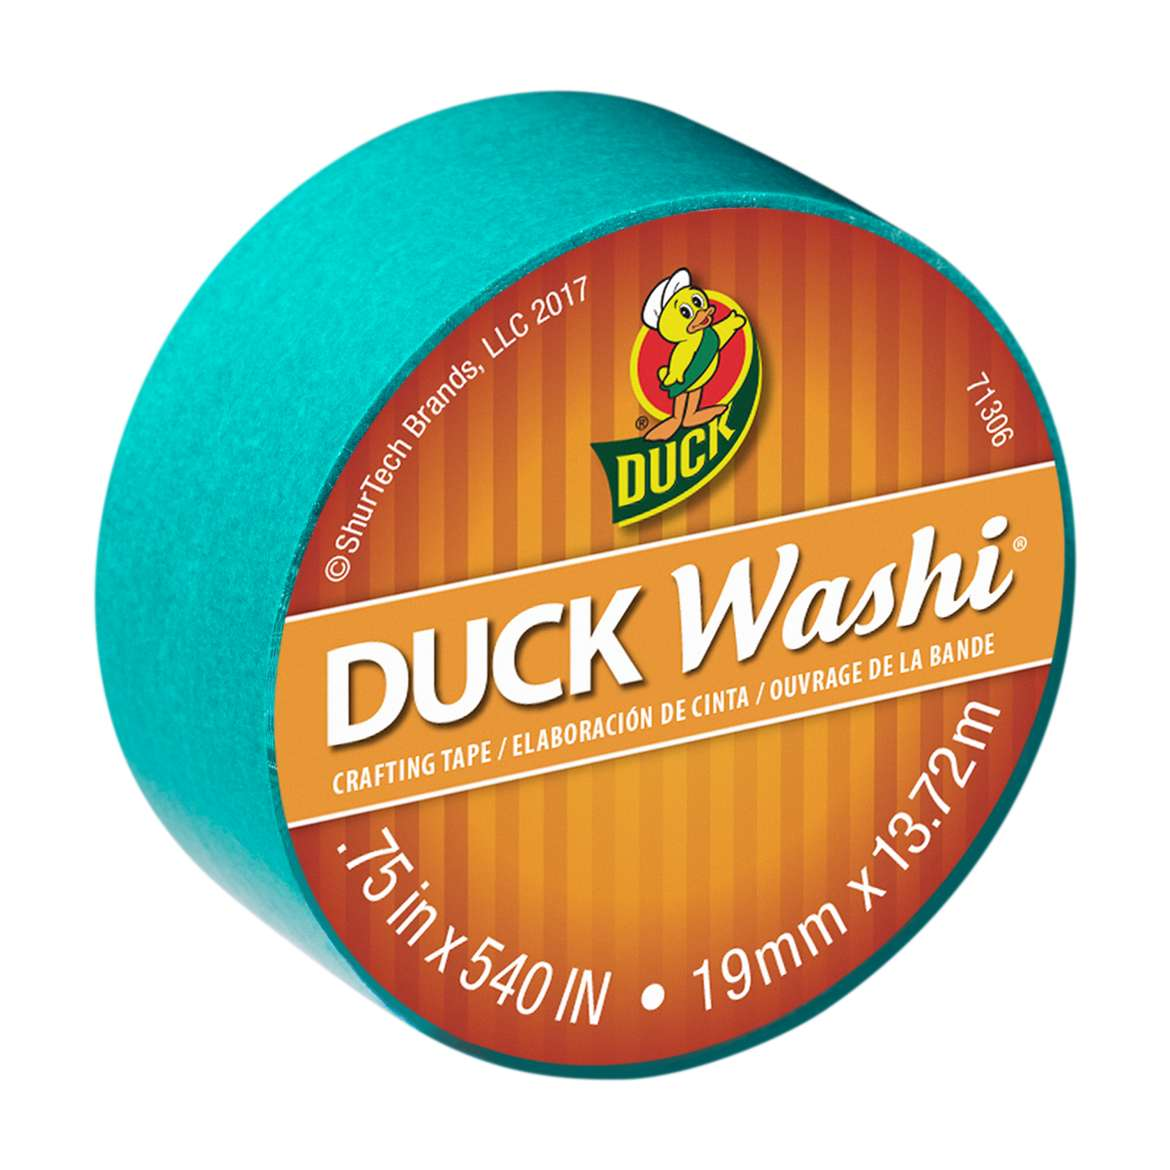 """Duck Brand Washi Crafting Tape, 0.75"""" x 15 yards, Teal"""